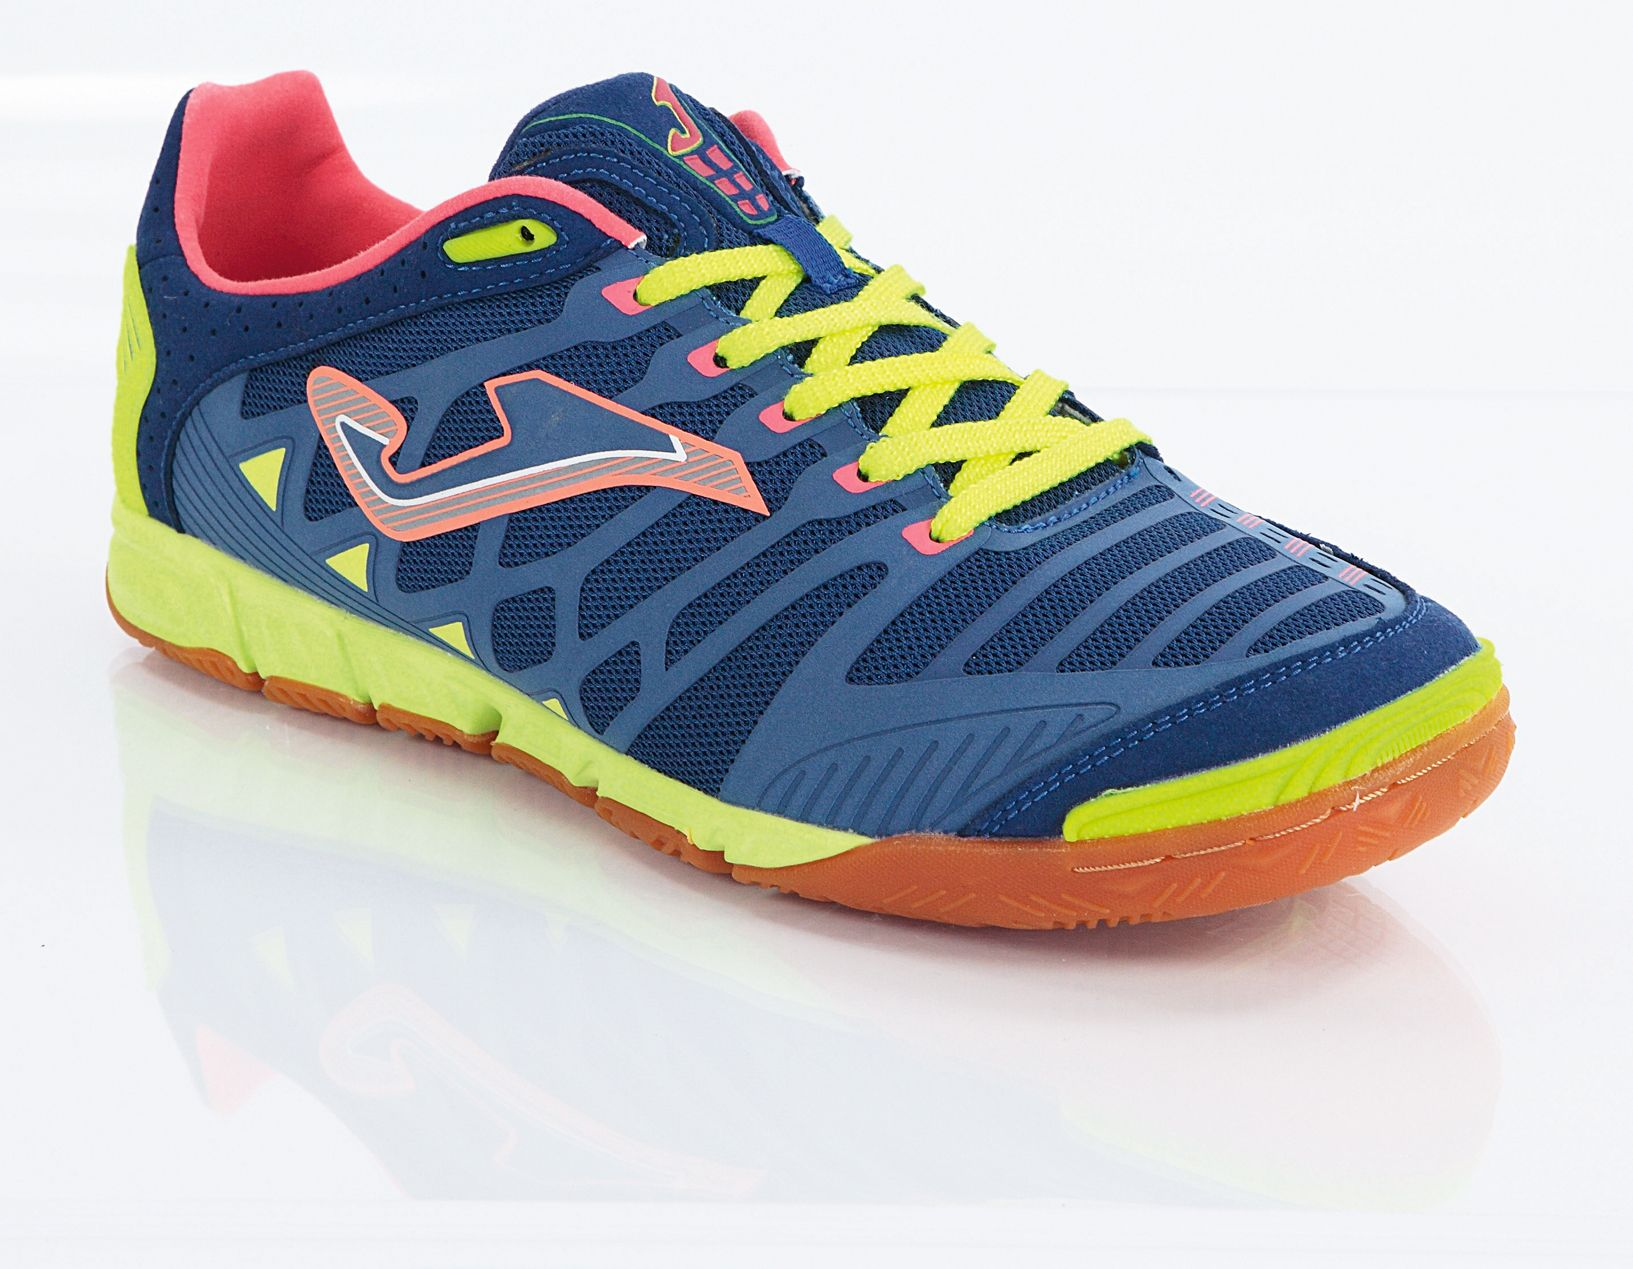 Joma R.Hispalis 607 Coral-Negro, Chaussures de Running Homme, Corail, 44 EU